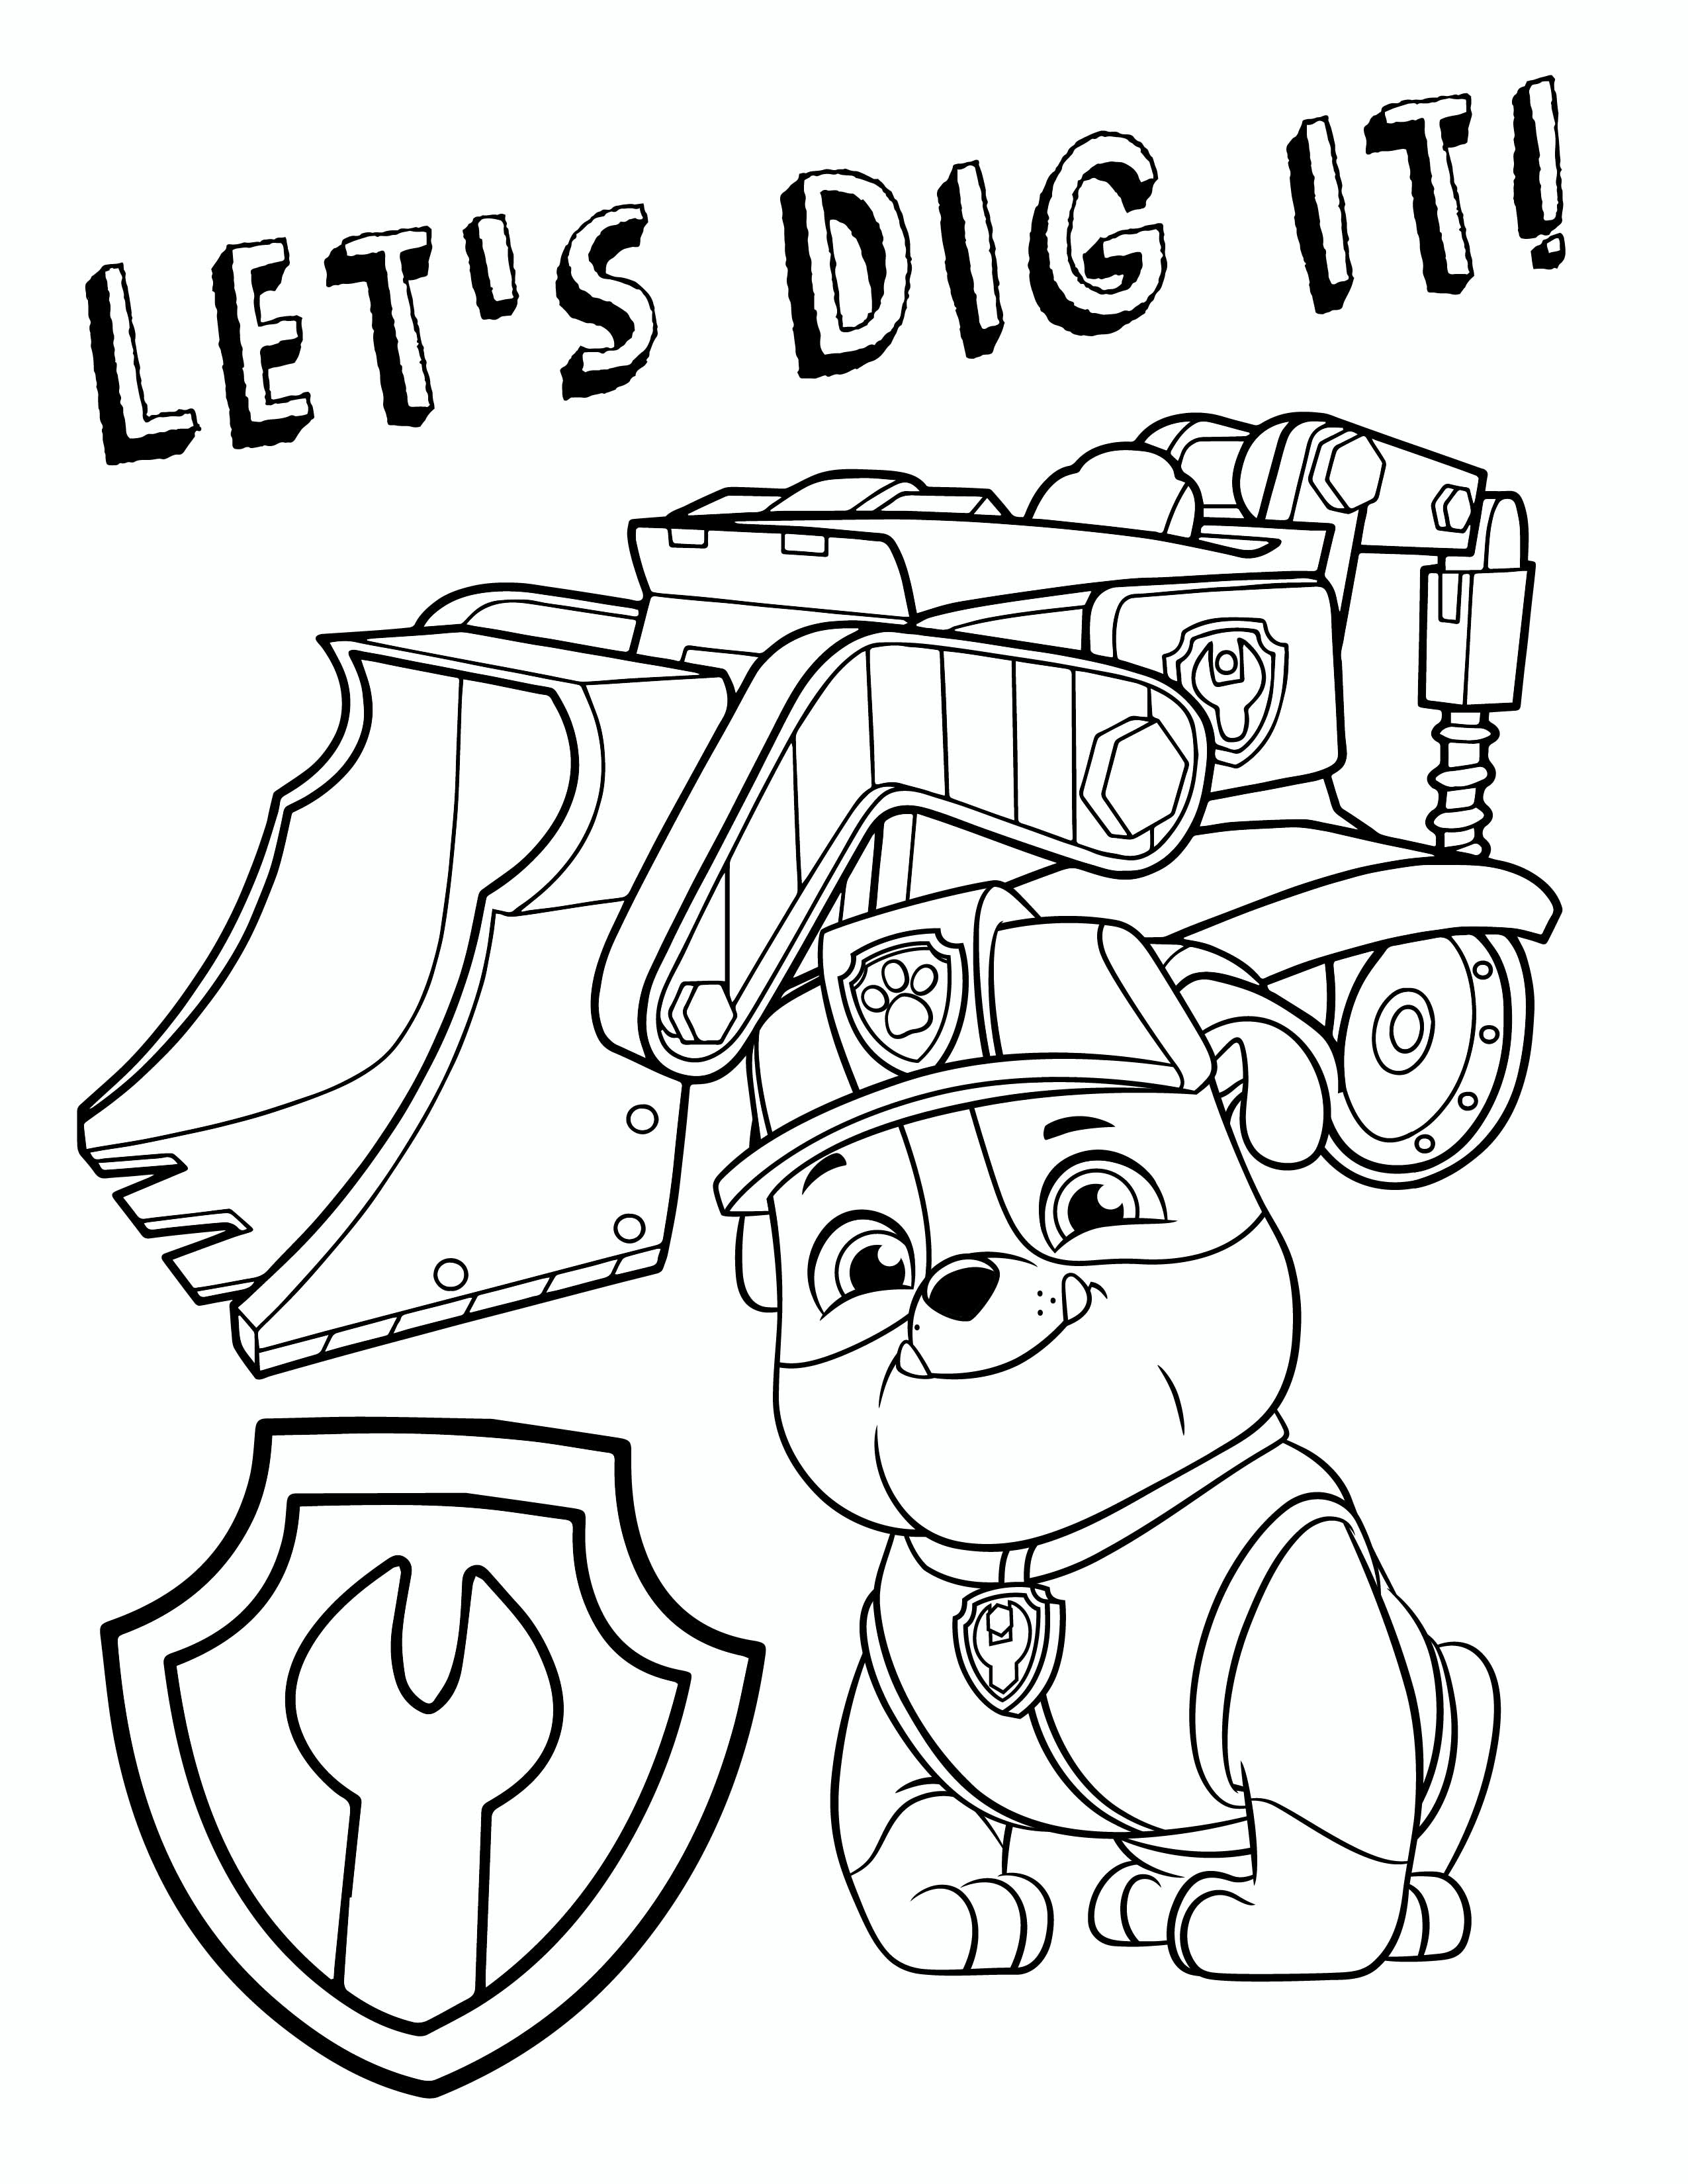 Coloring Pages : Coloring Pages Paw Patrol Free Sheets Printable Of - Free Coloring Pages Com Printable